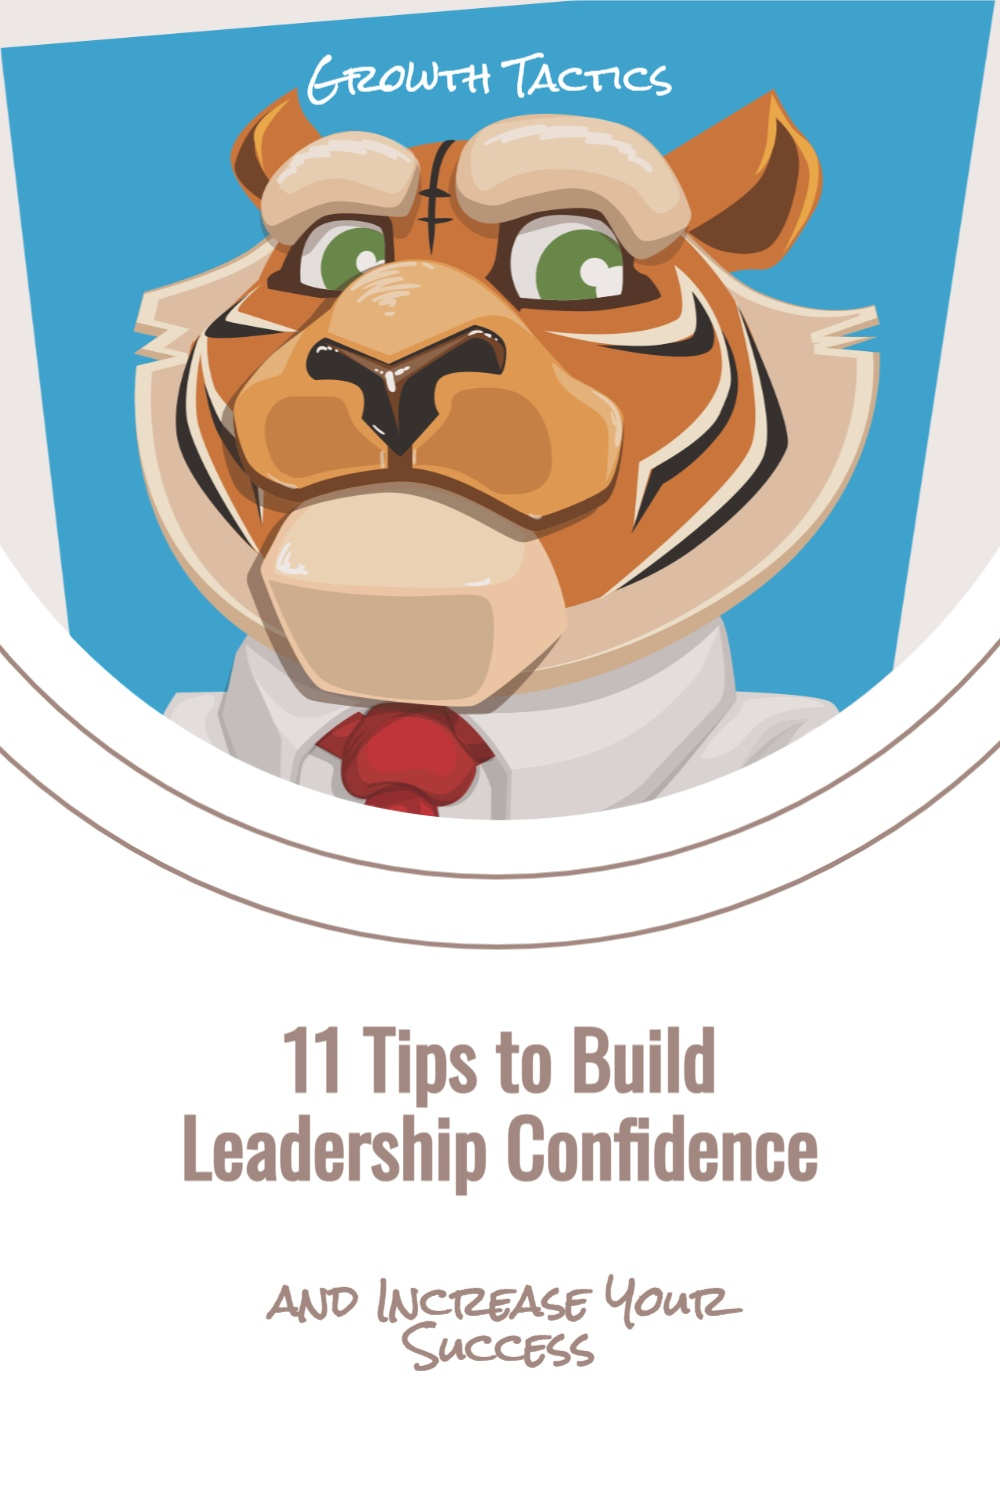 Some people are born with leadership confidence but most of us take time to get there. In this article is all the information to be a confident successful leader.